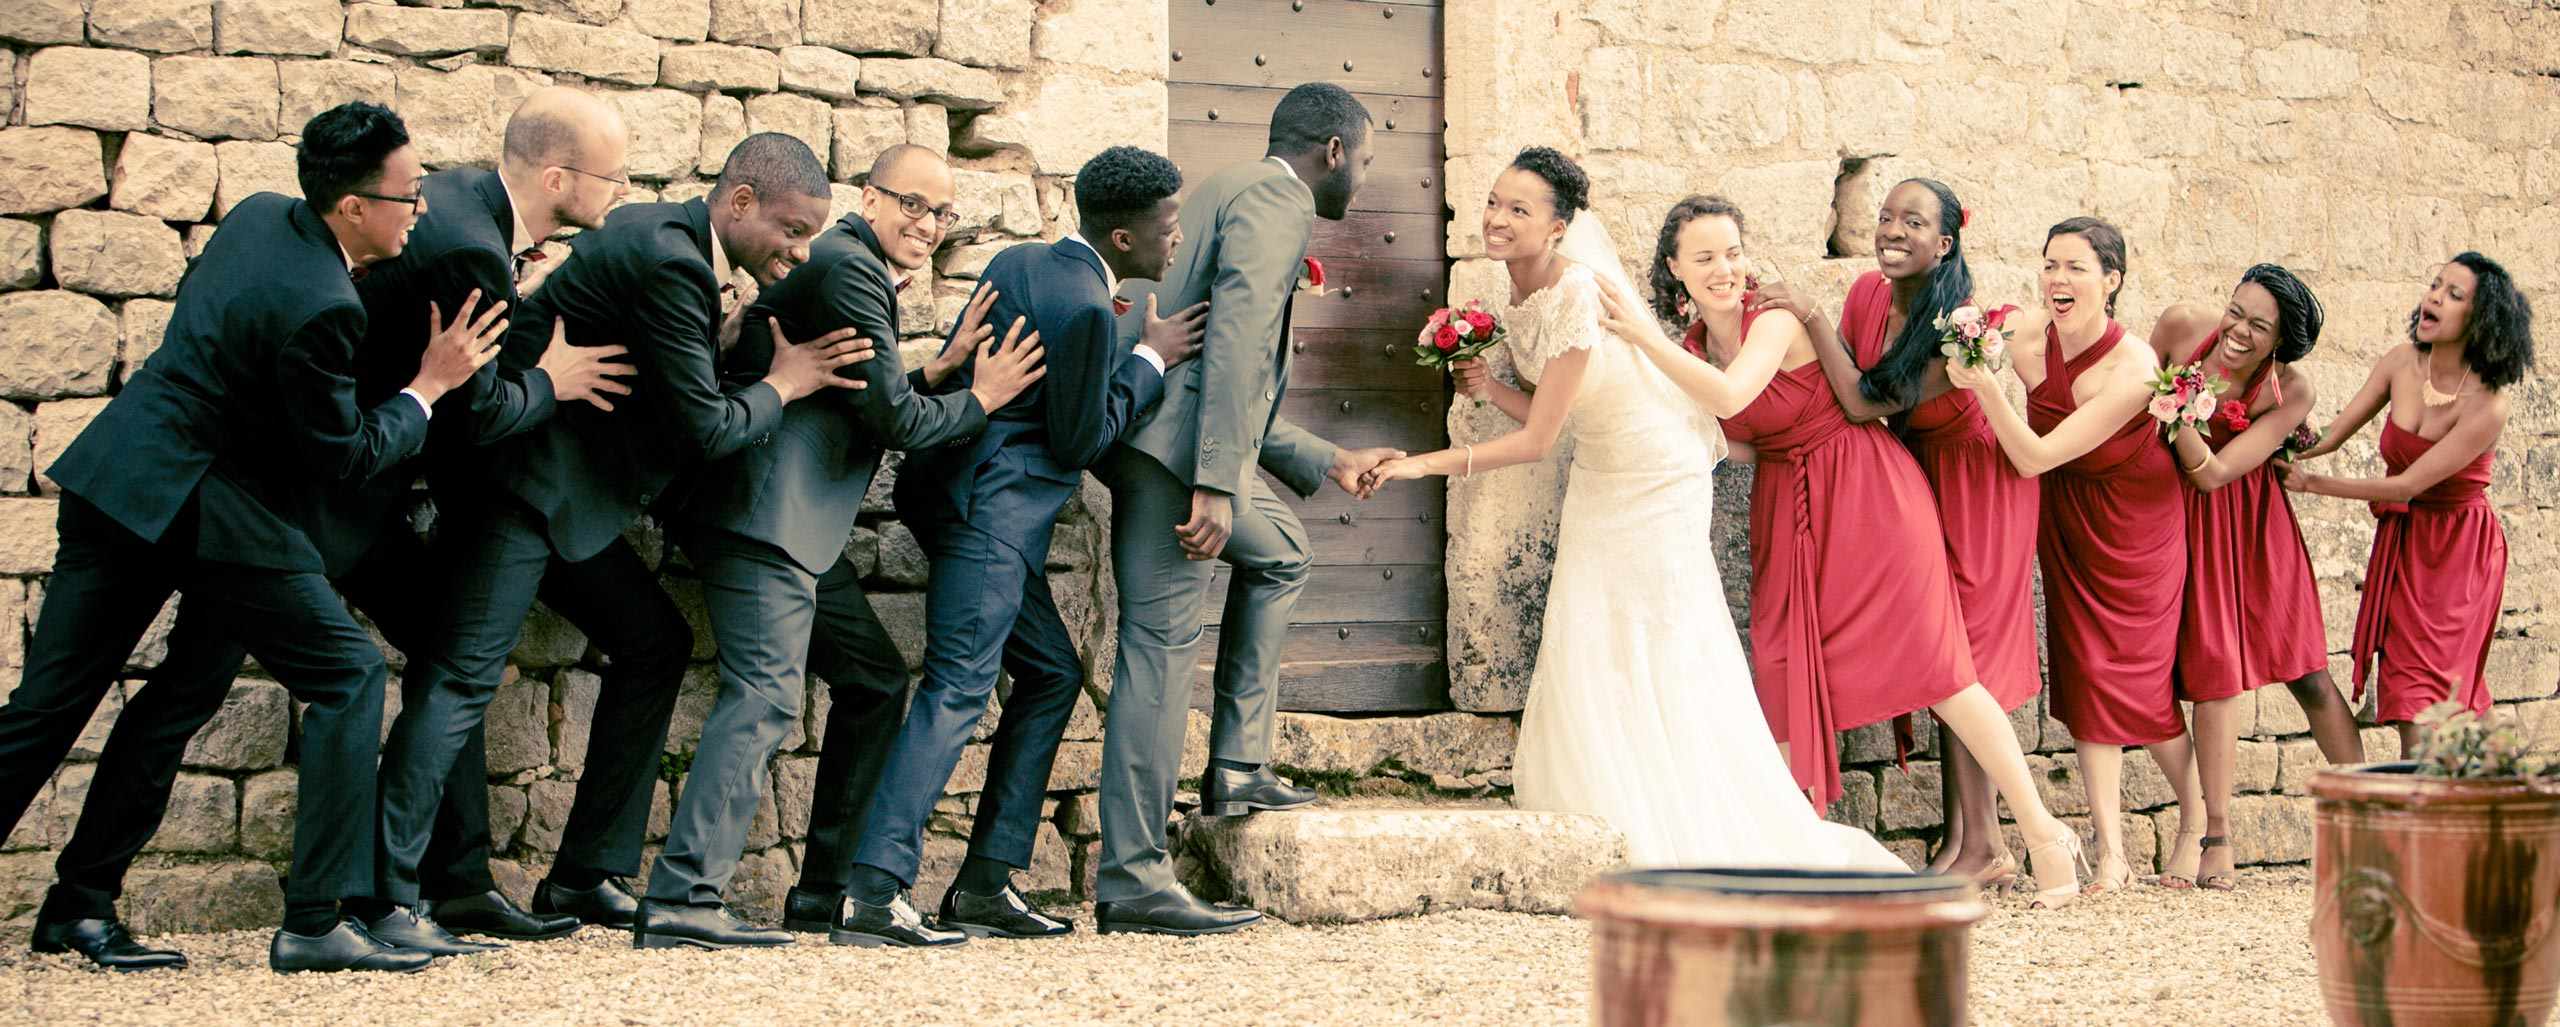 Photographie Video Mariage Albi Rodez Toulouse Montpellier